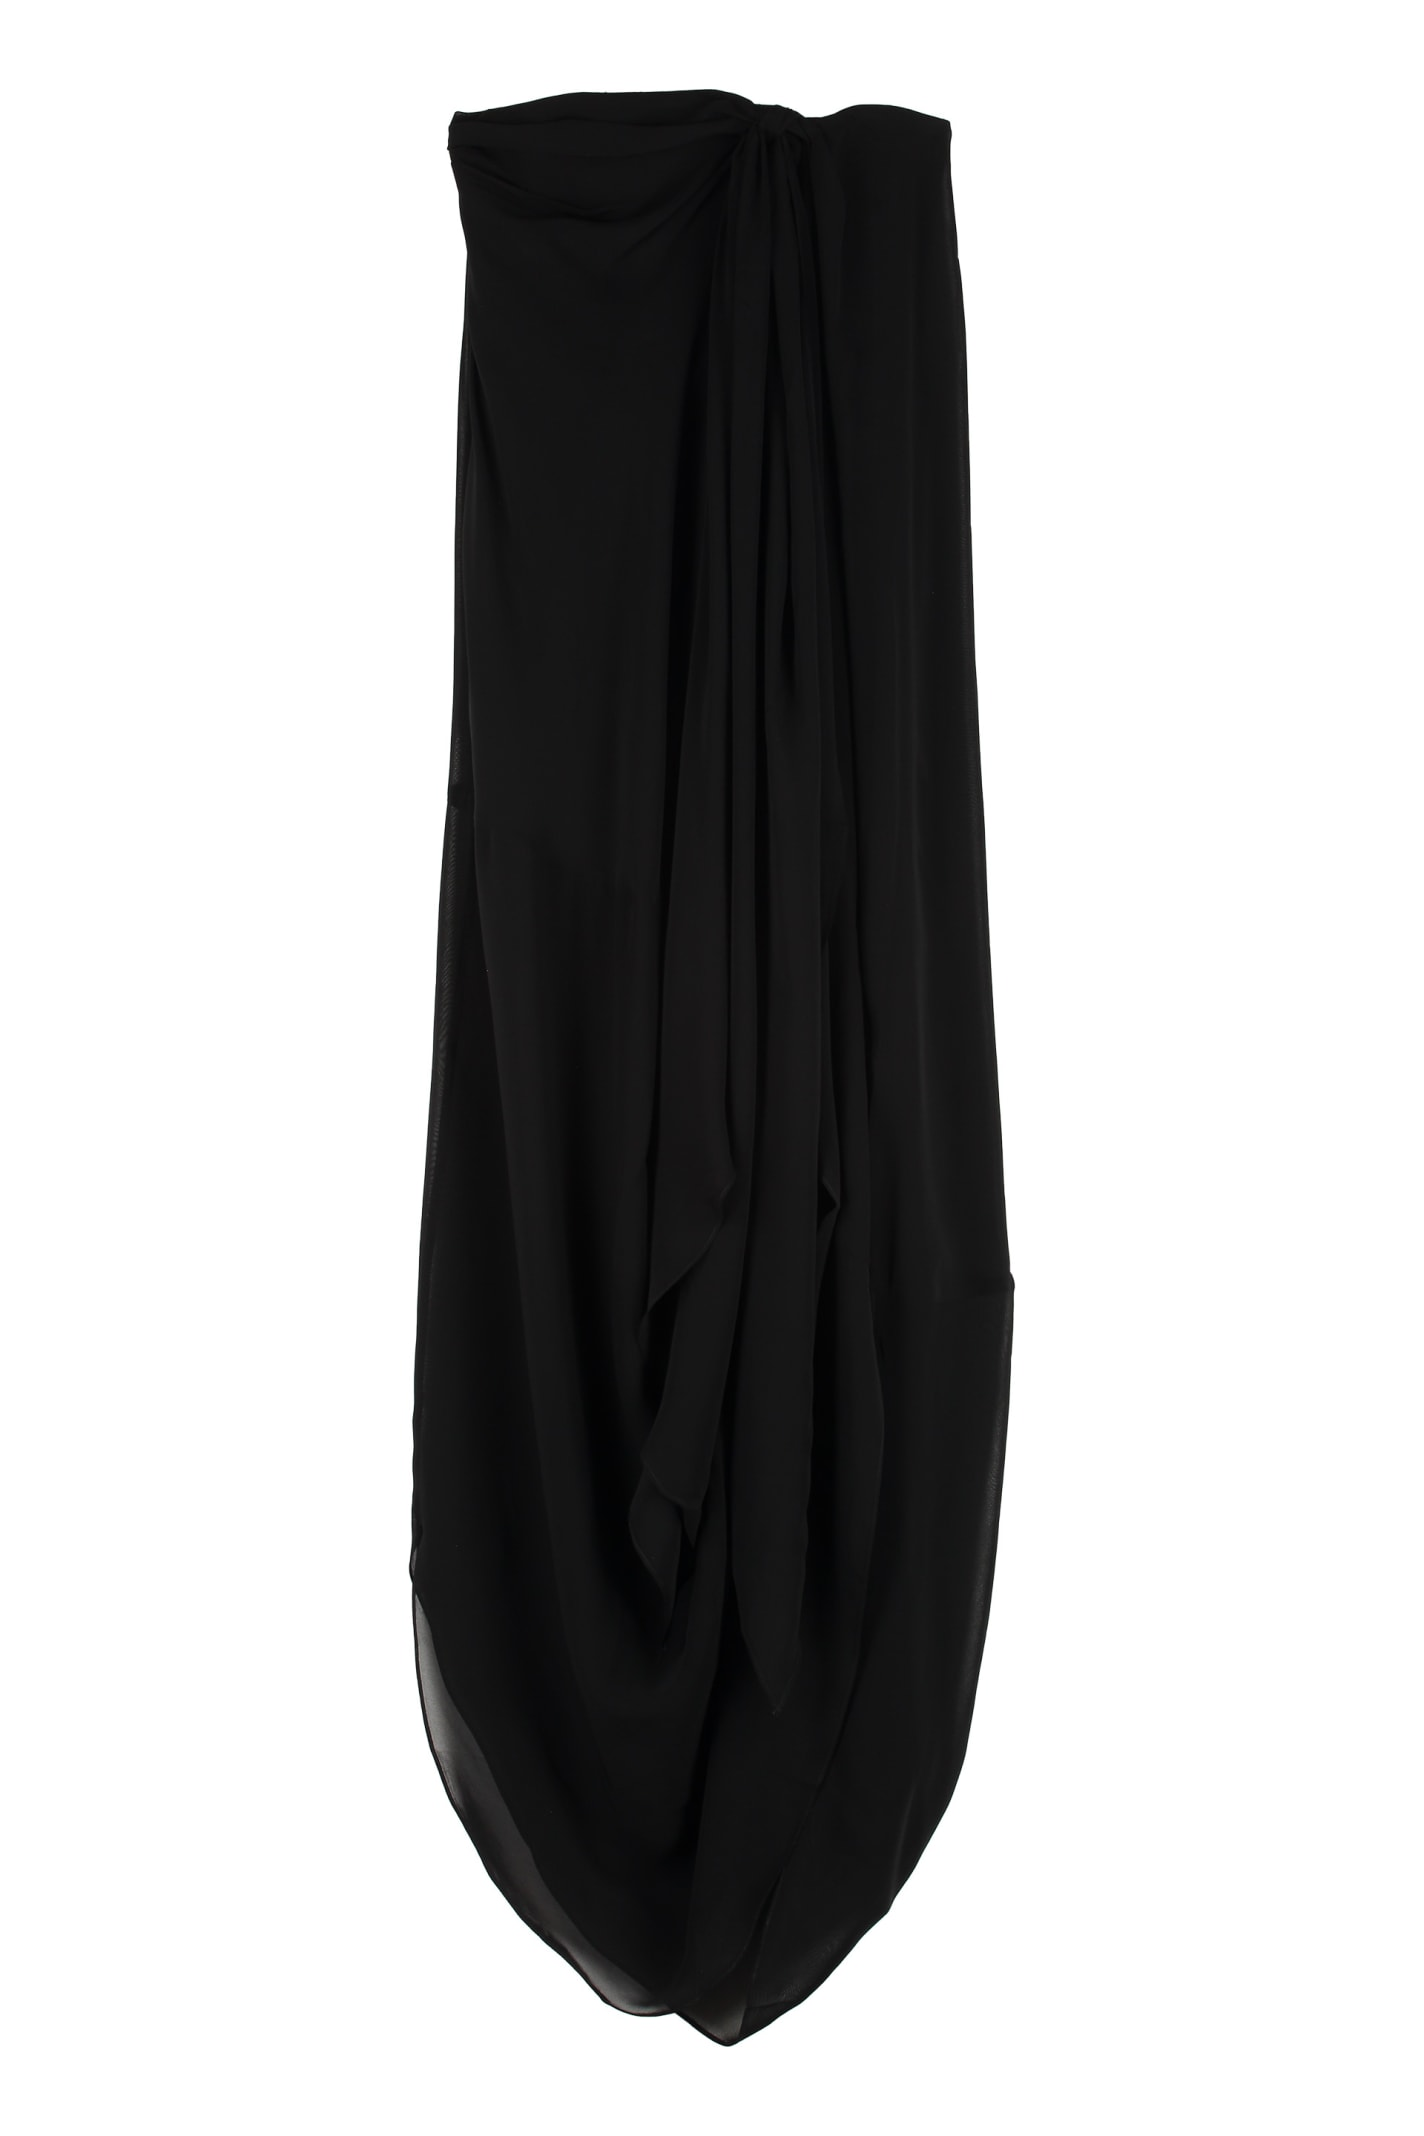 Jacquemus Asola Draped Dress